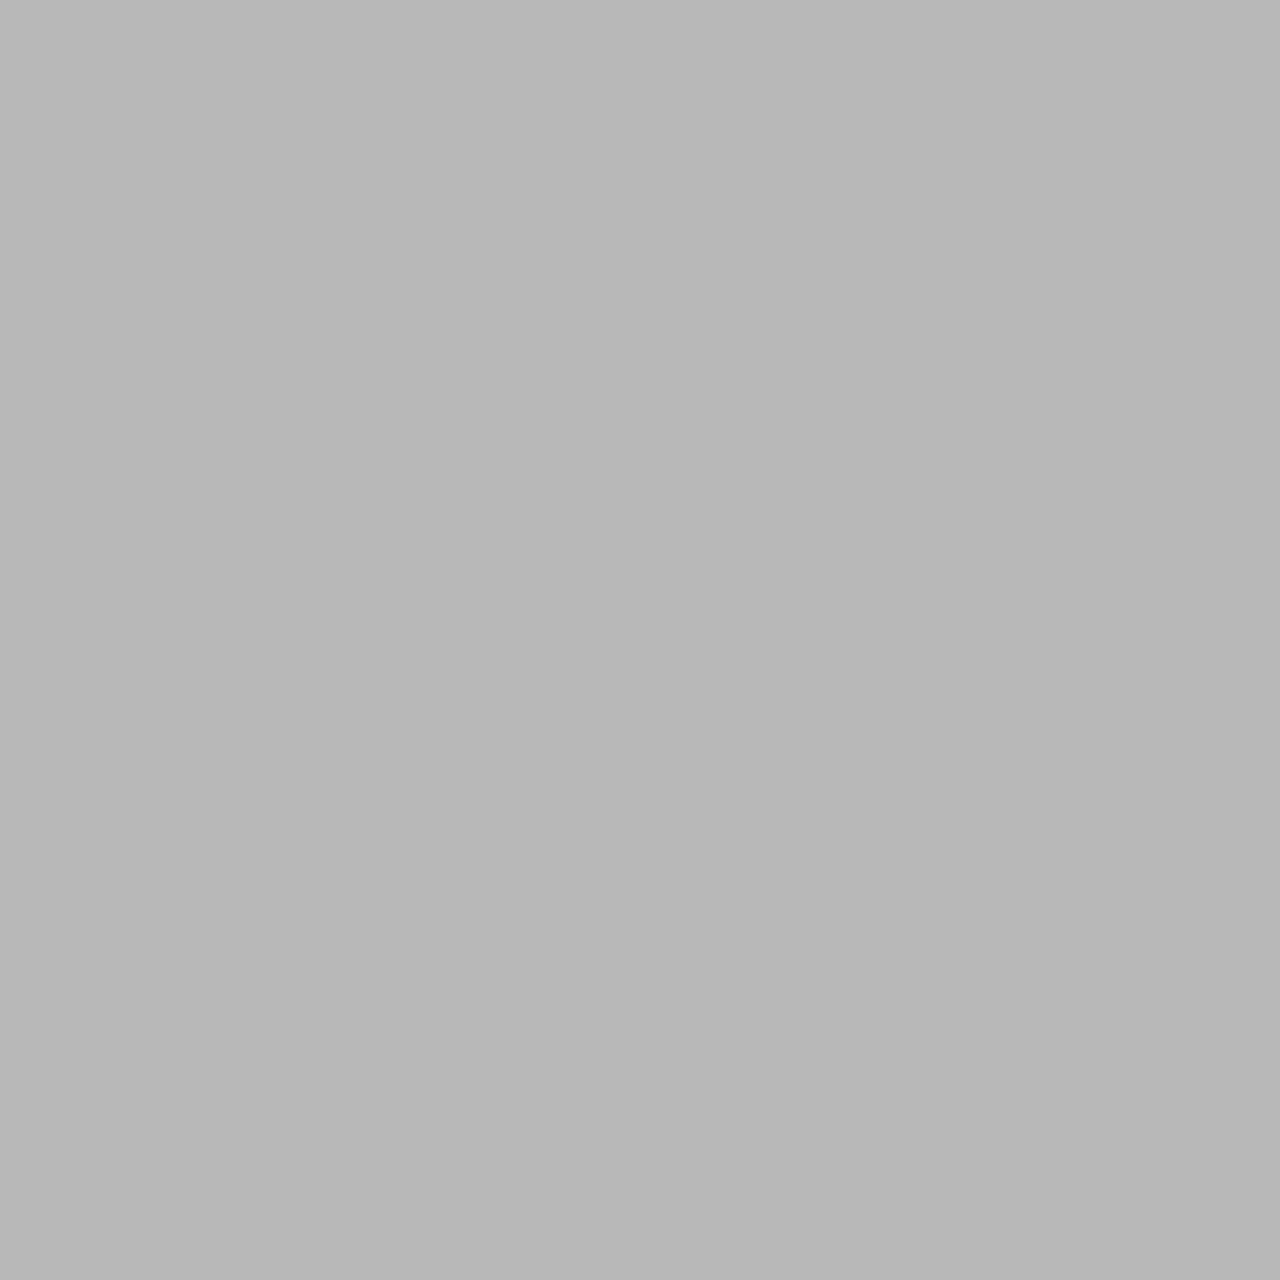 """SUPERIOR SEAMLESS PAPER BACKGROUND 53""""X36' - SLATE GREY"""